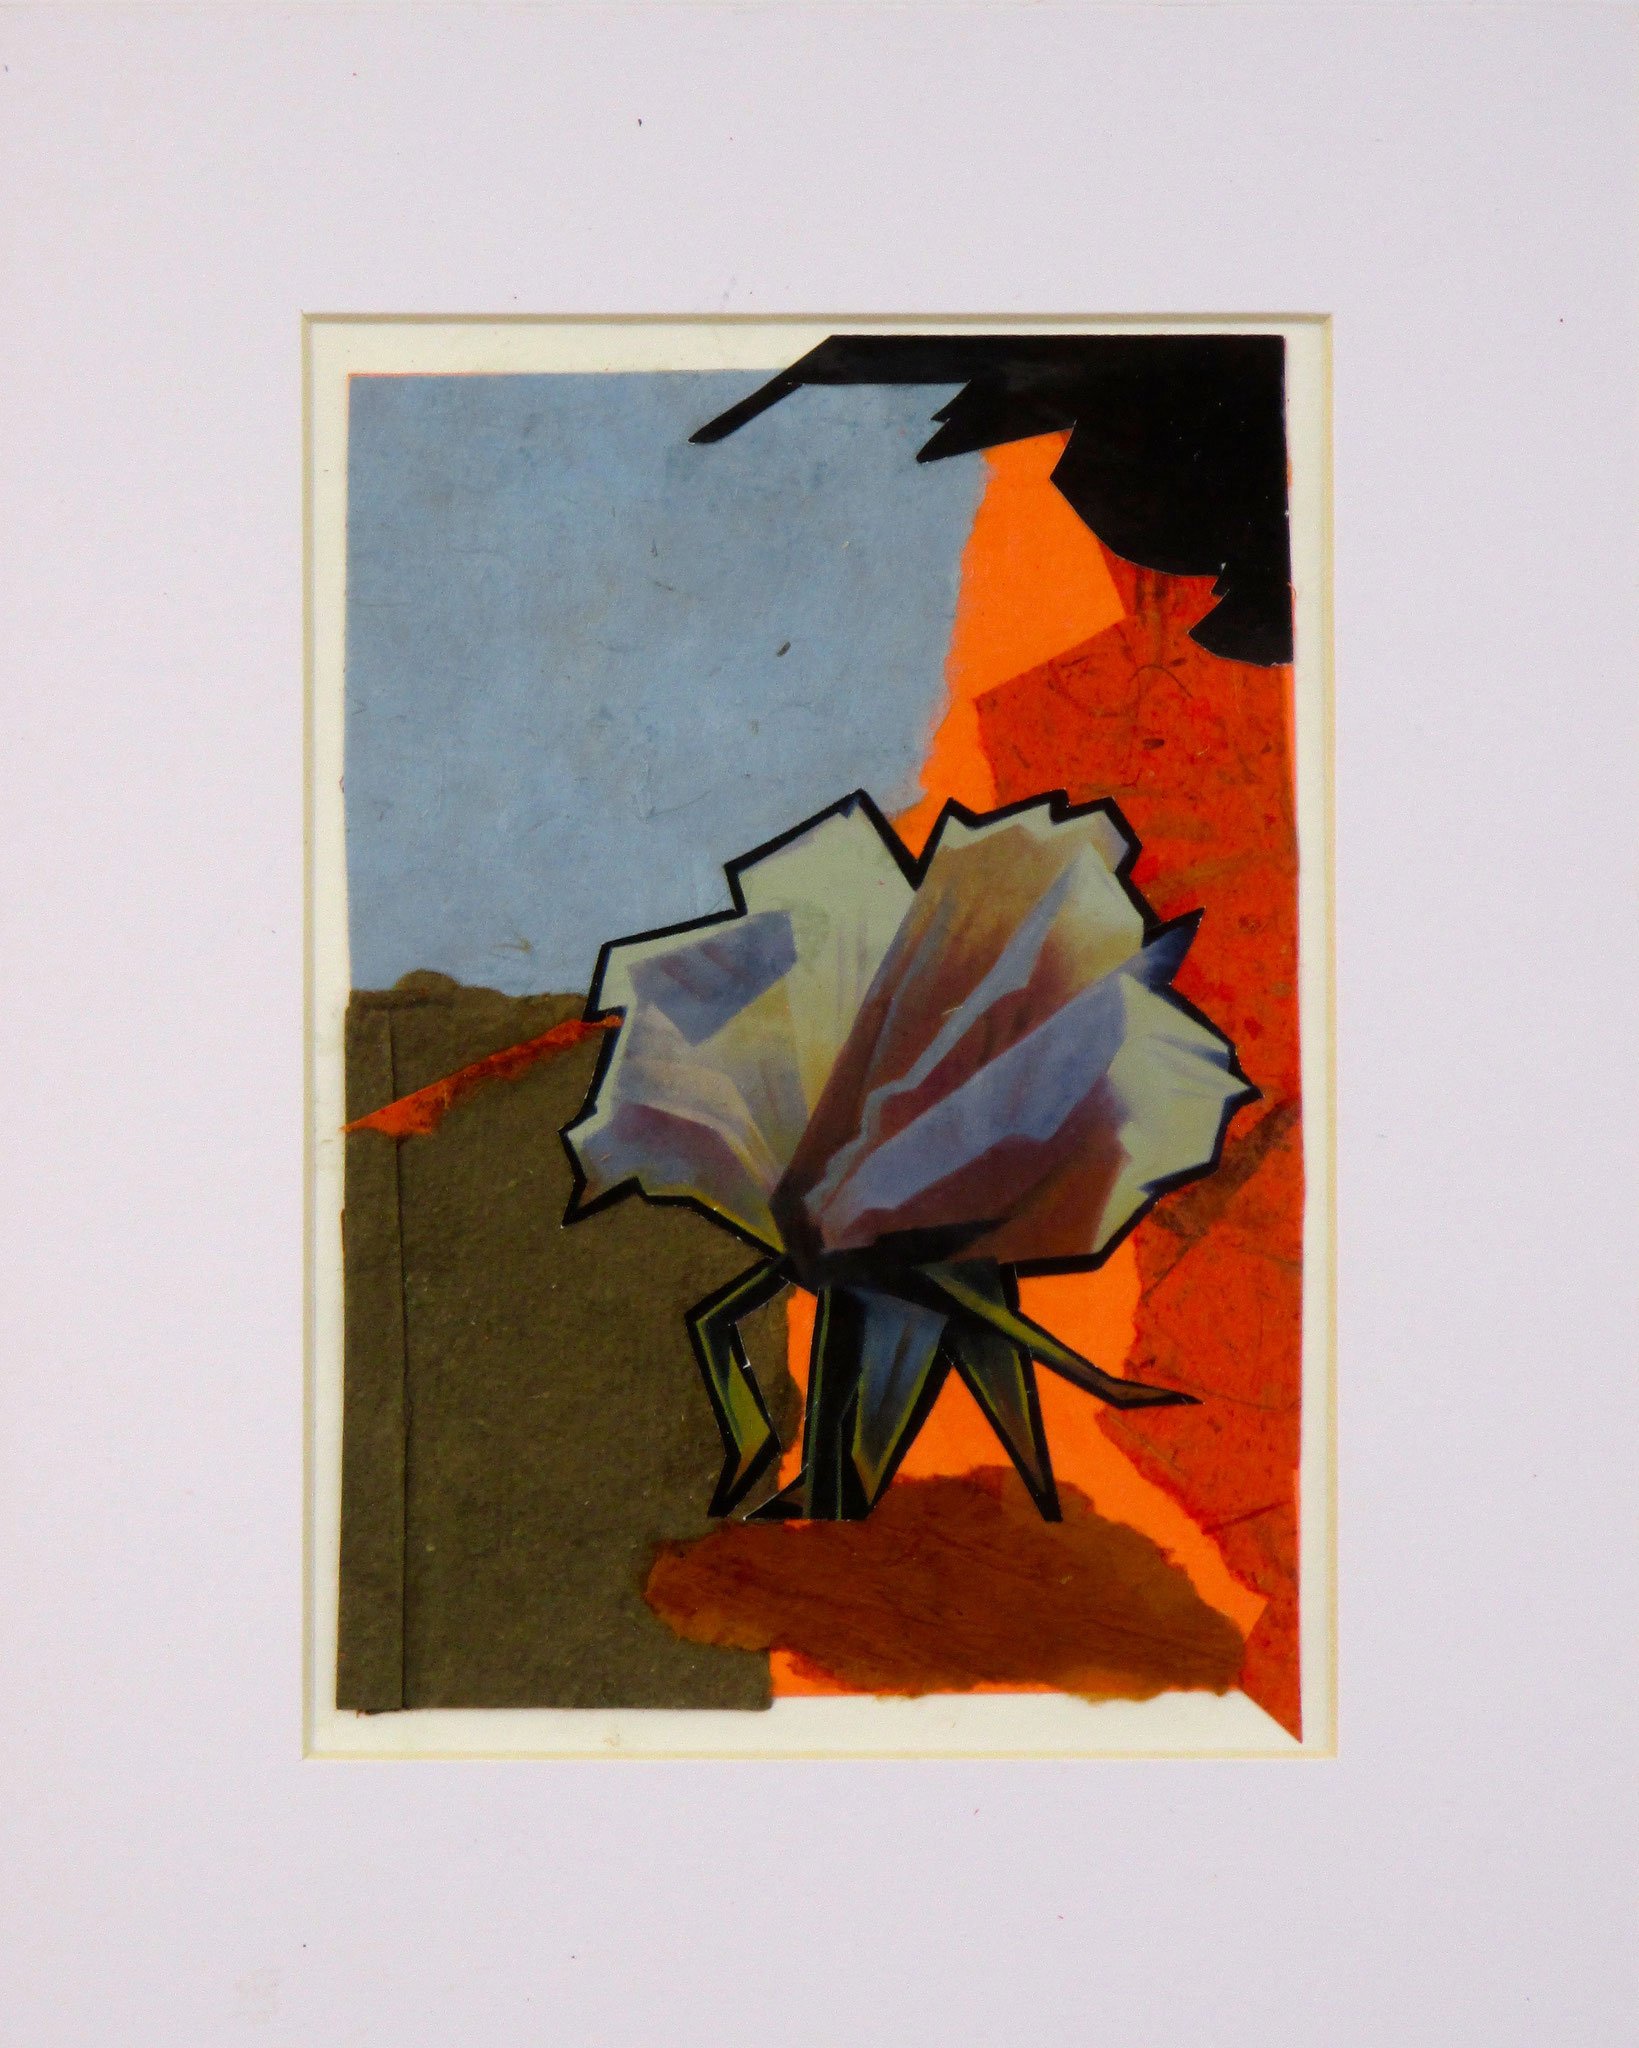 Cactus Flower, collage on paper, 8 x 10, 2016 SOLD